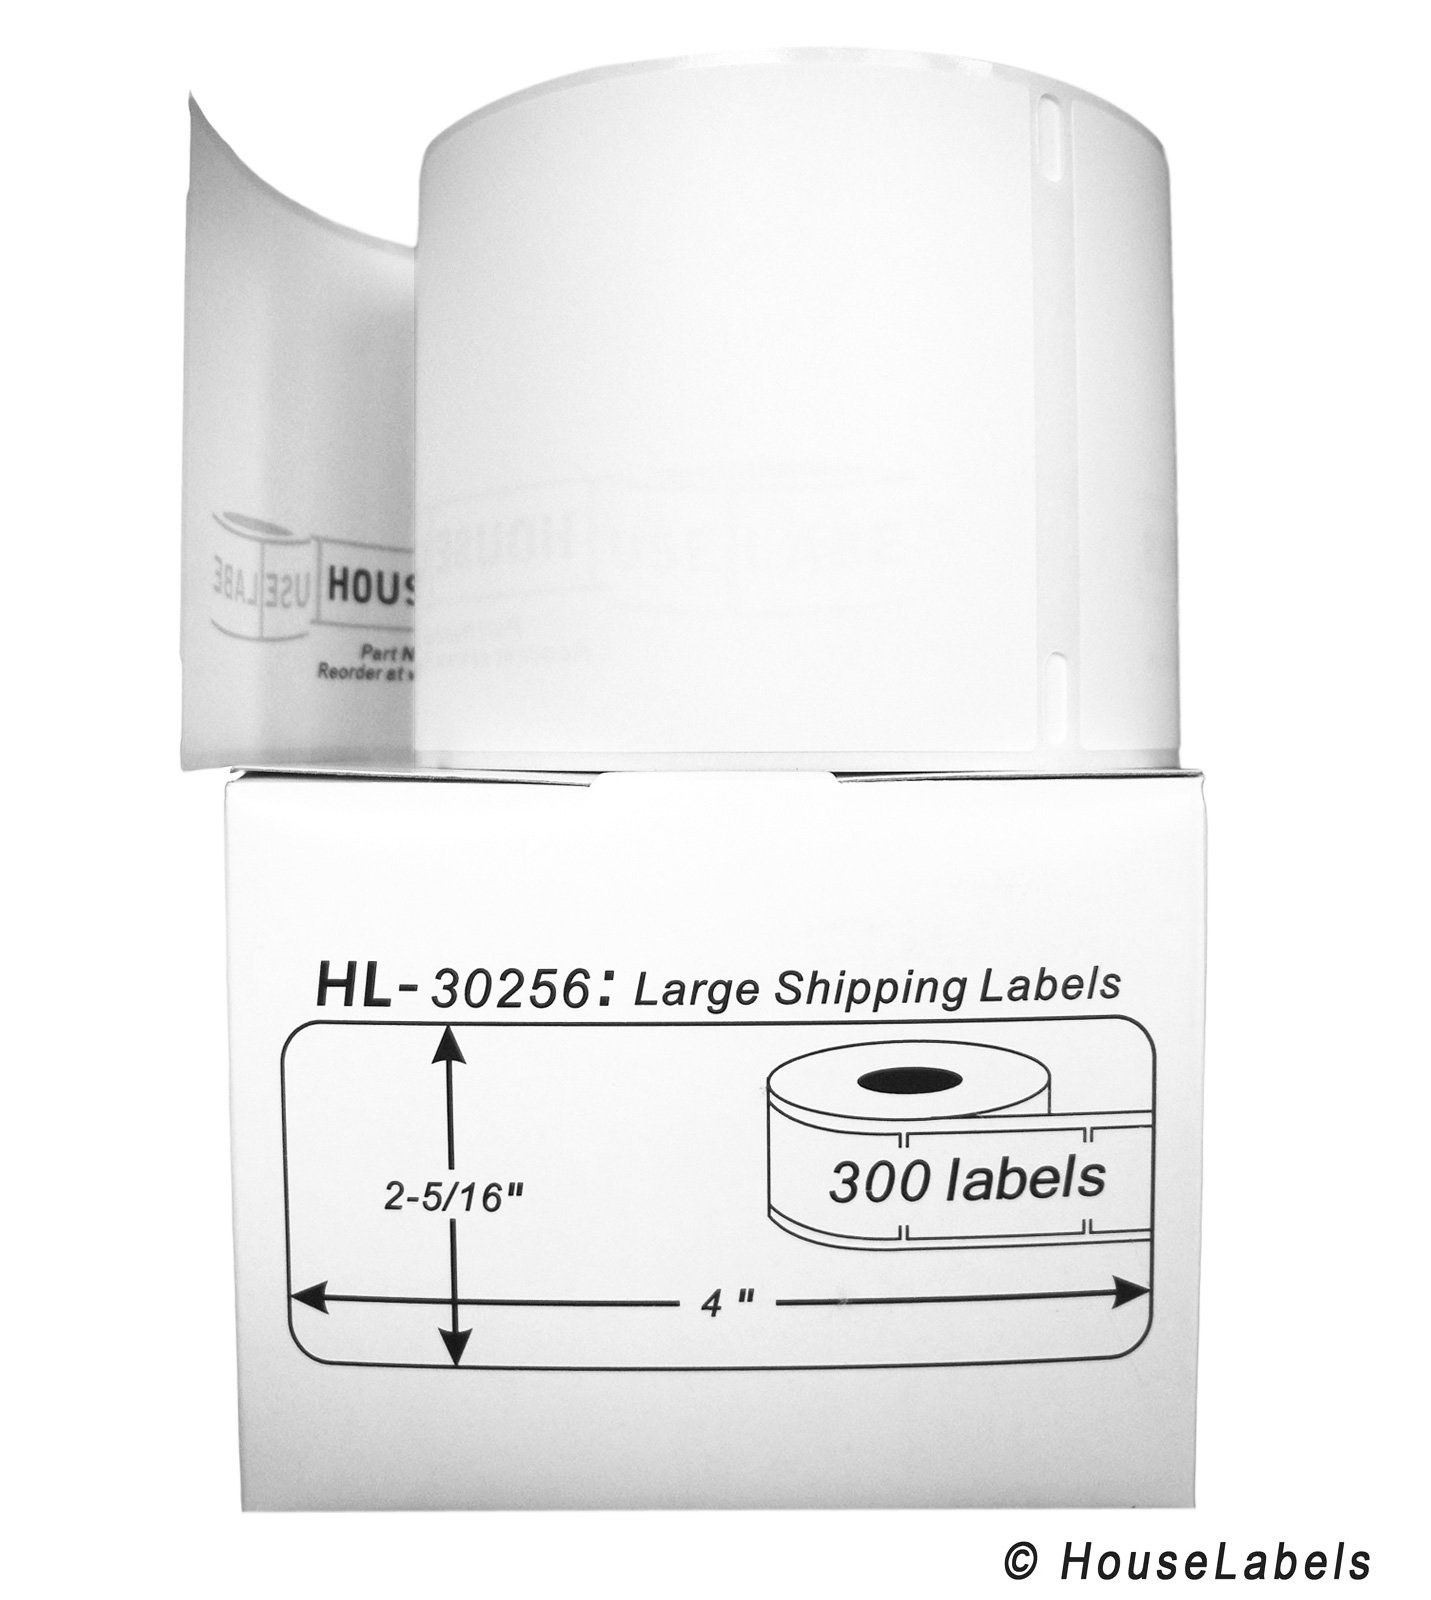 50 Rolls; 300 Labels per Roll of DYMO-Compatible 30256 Large Shipping Labels (2-5/16'' x 4'') -- BPA Free!